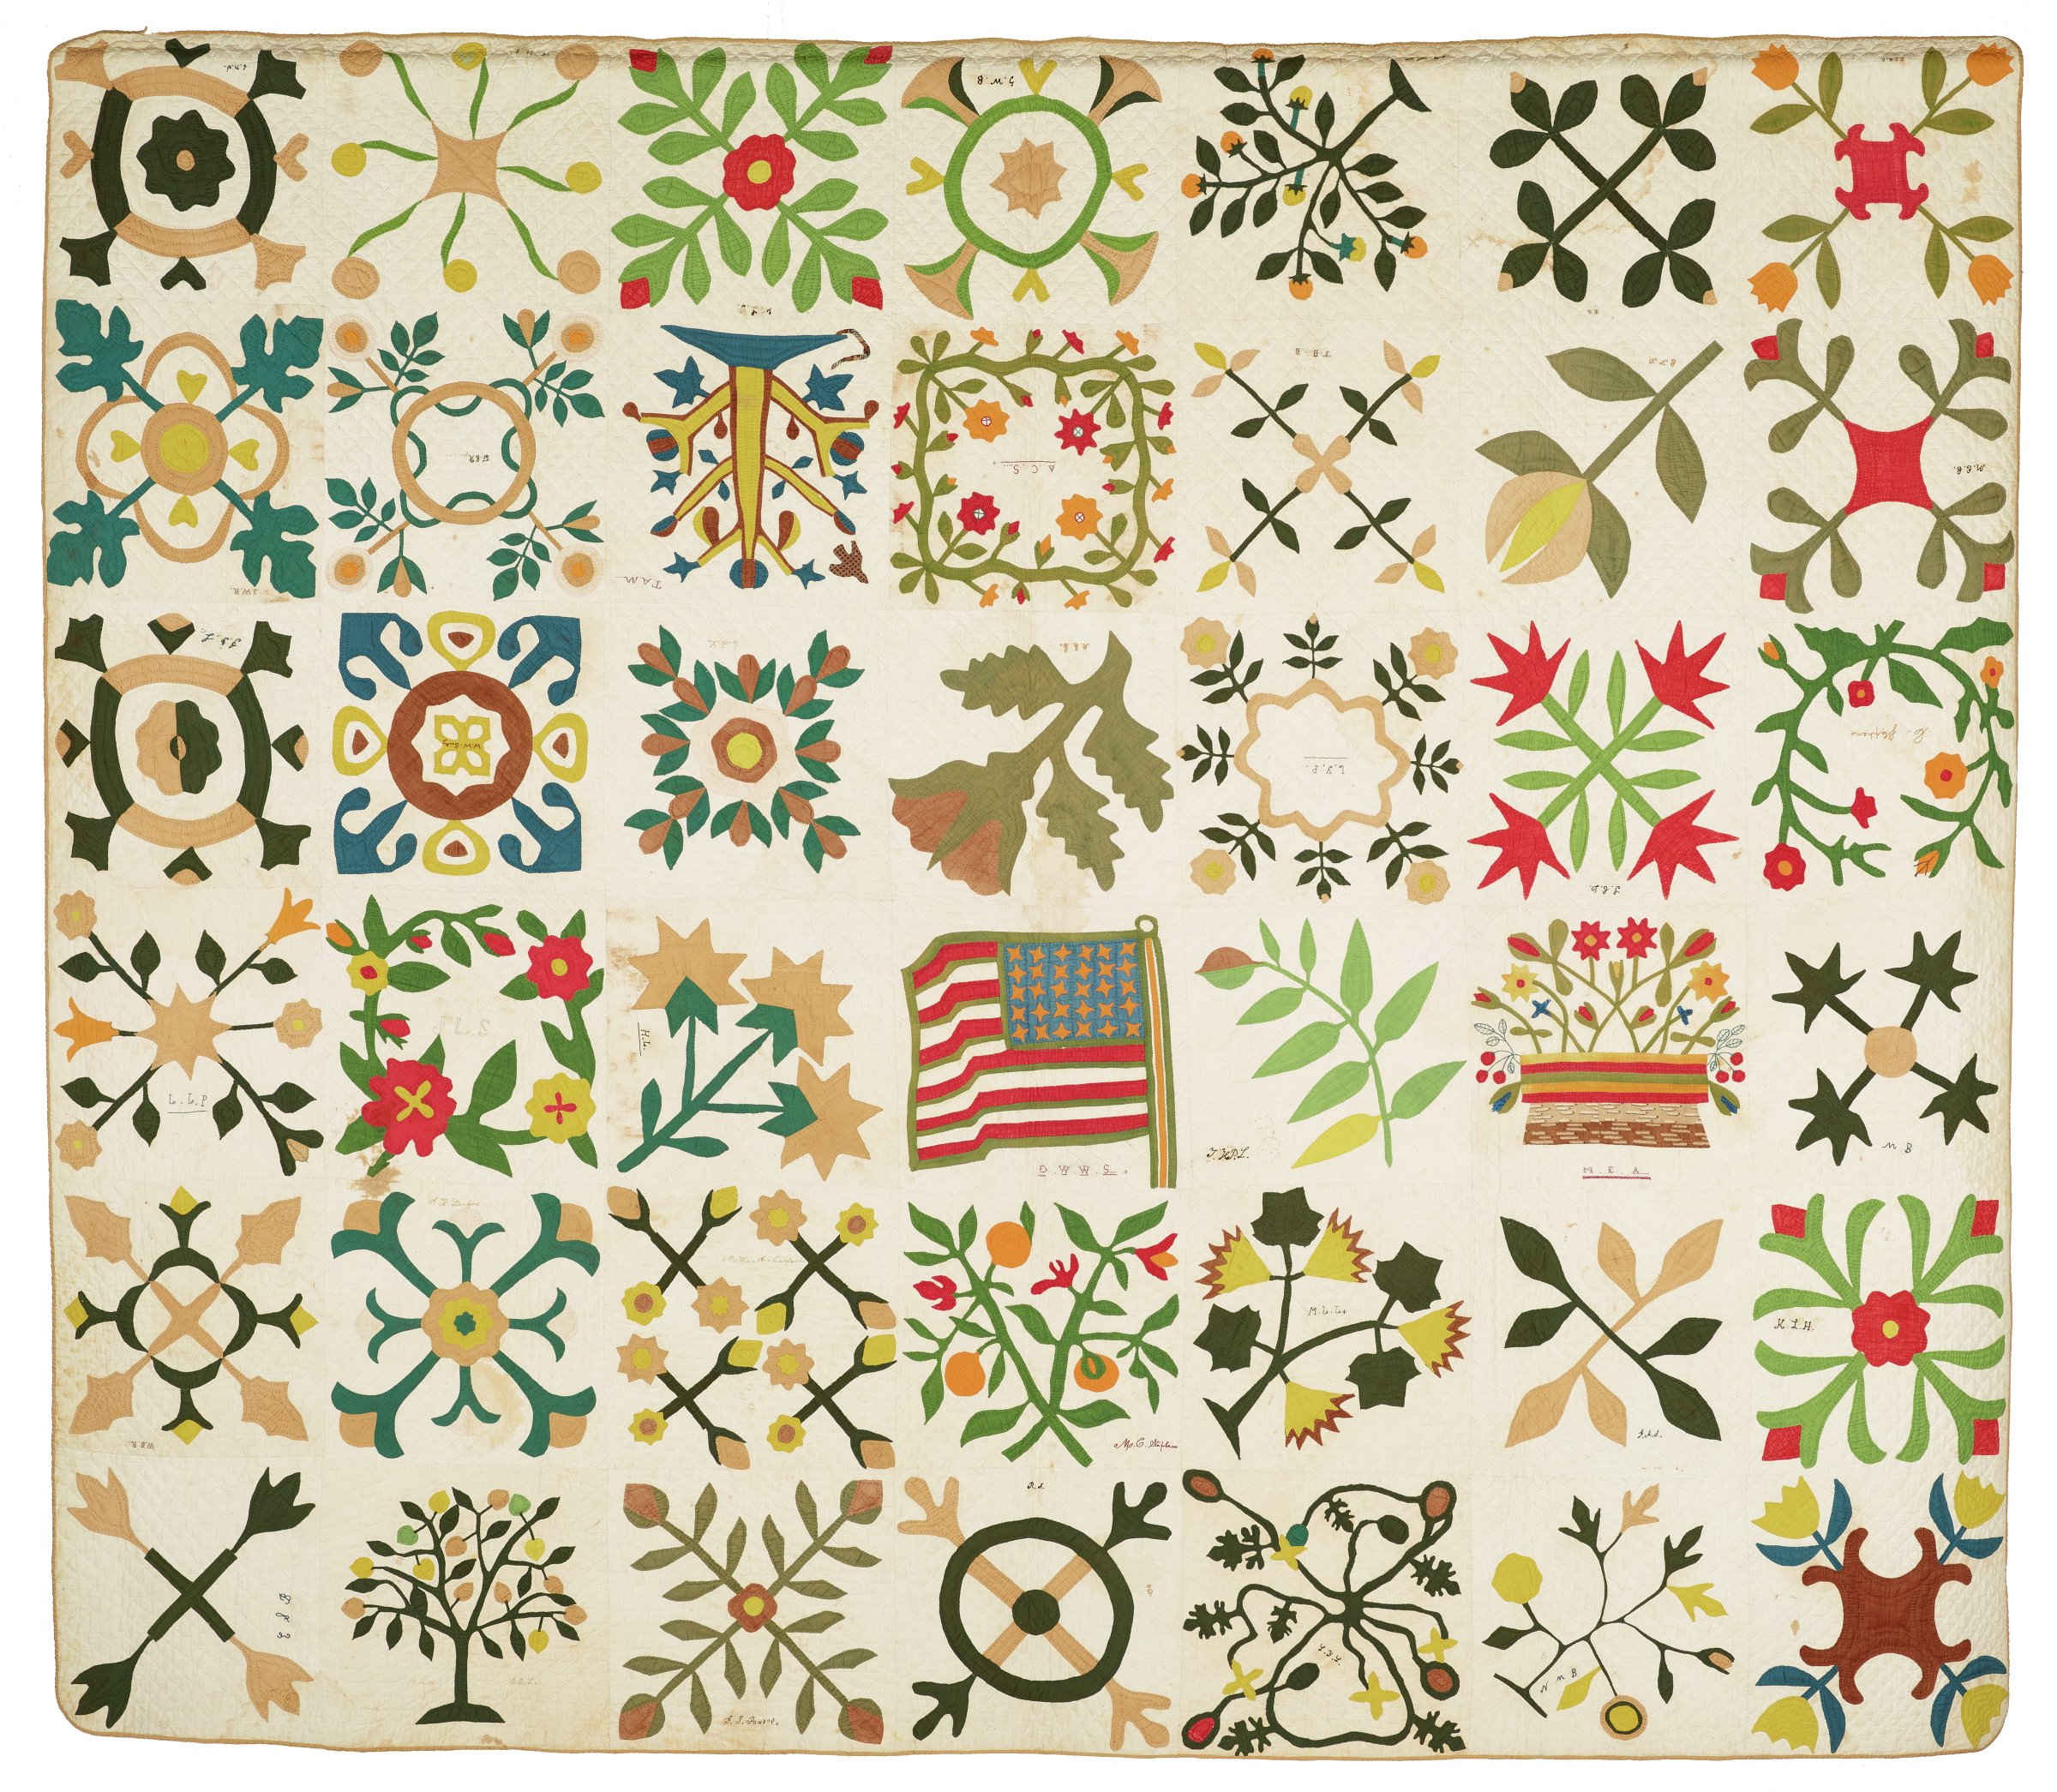 Large, colorful album quilt comprised of 42 blocks of applique on solid cotton, each made by a different quilter in a different design, the blocks include flowers and floral motifs based on Alabama native flora, in the center is the United States flag, appearing to flutter gently in a light breeze, bearing 30 stars, the backing a plain muslin.